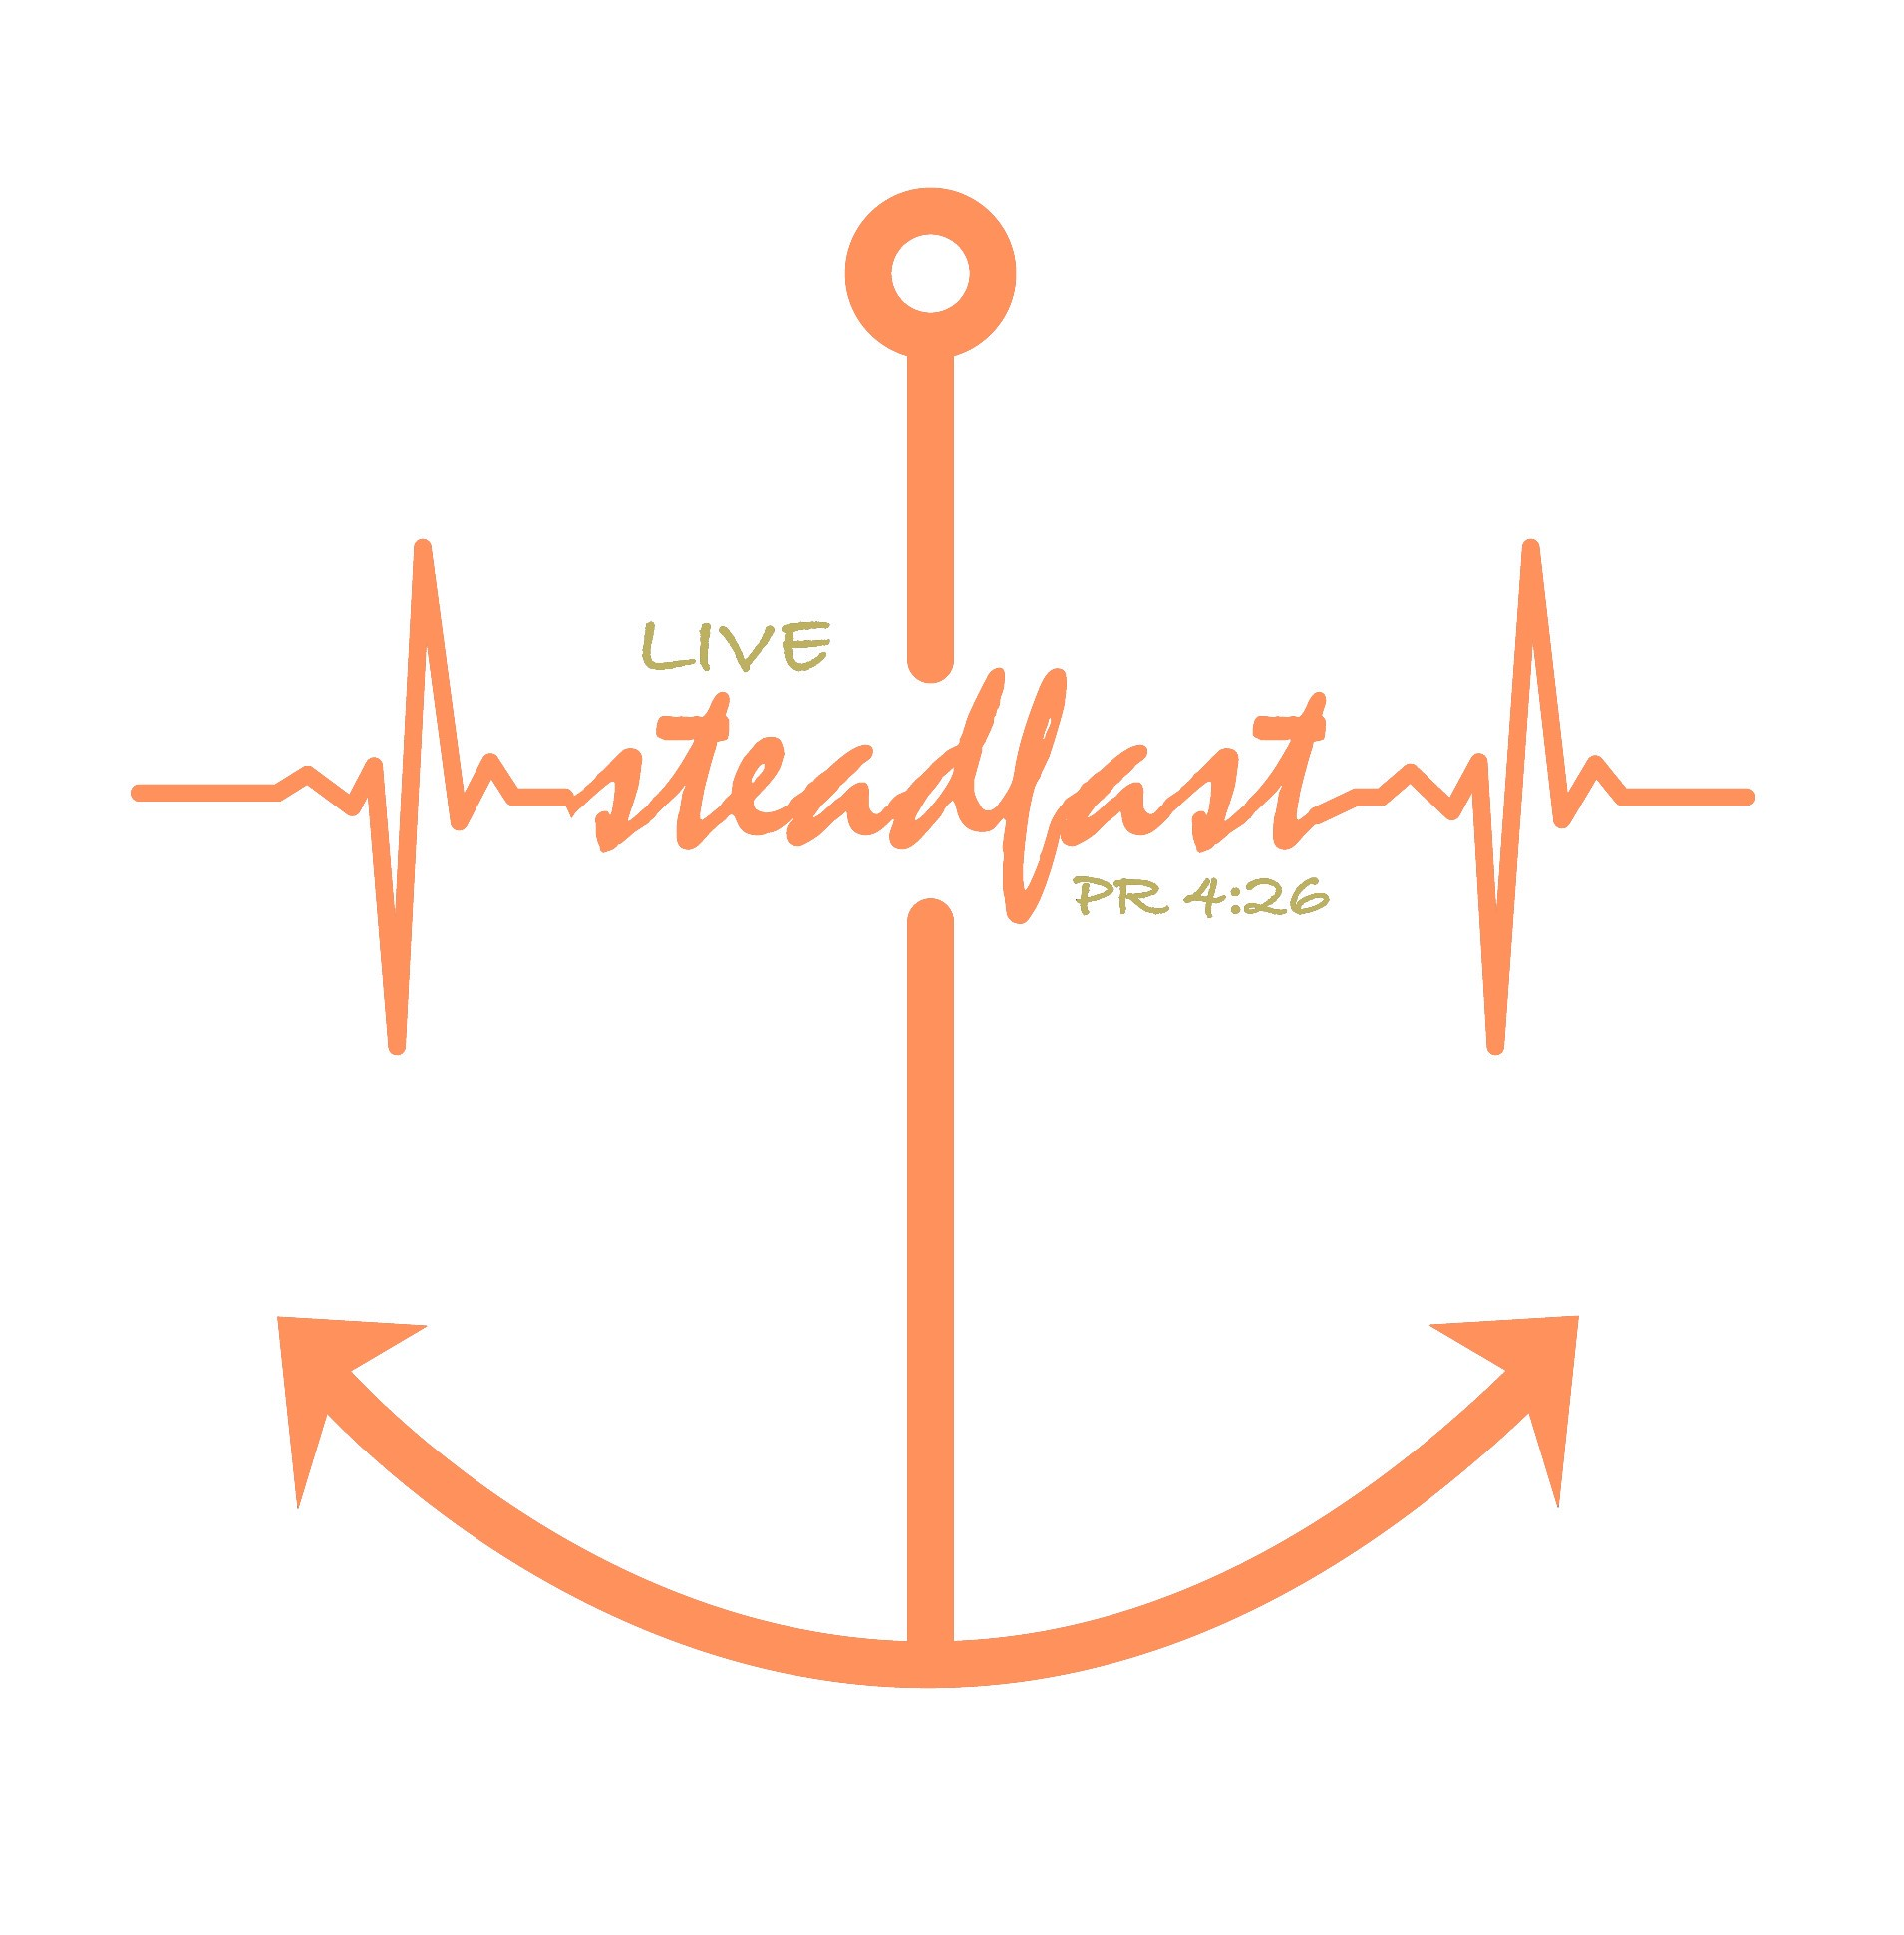 steadfast-logo-01 color2